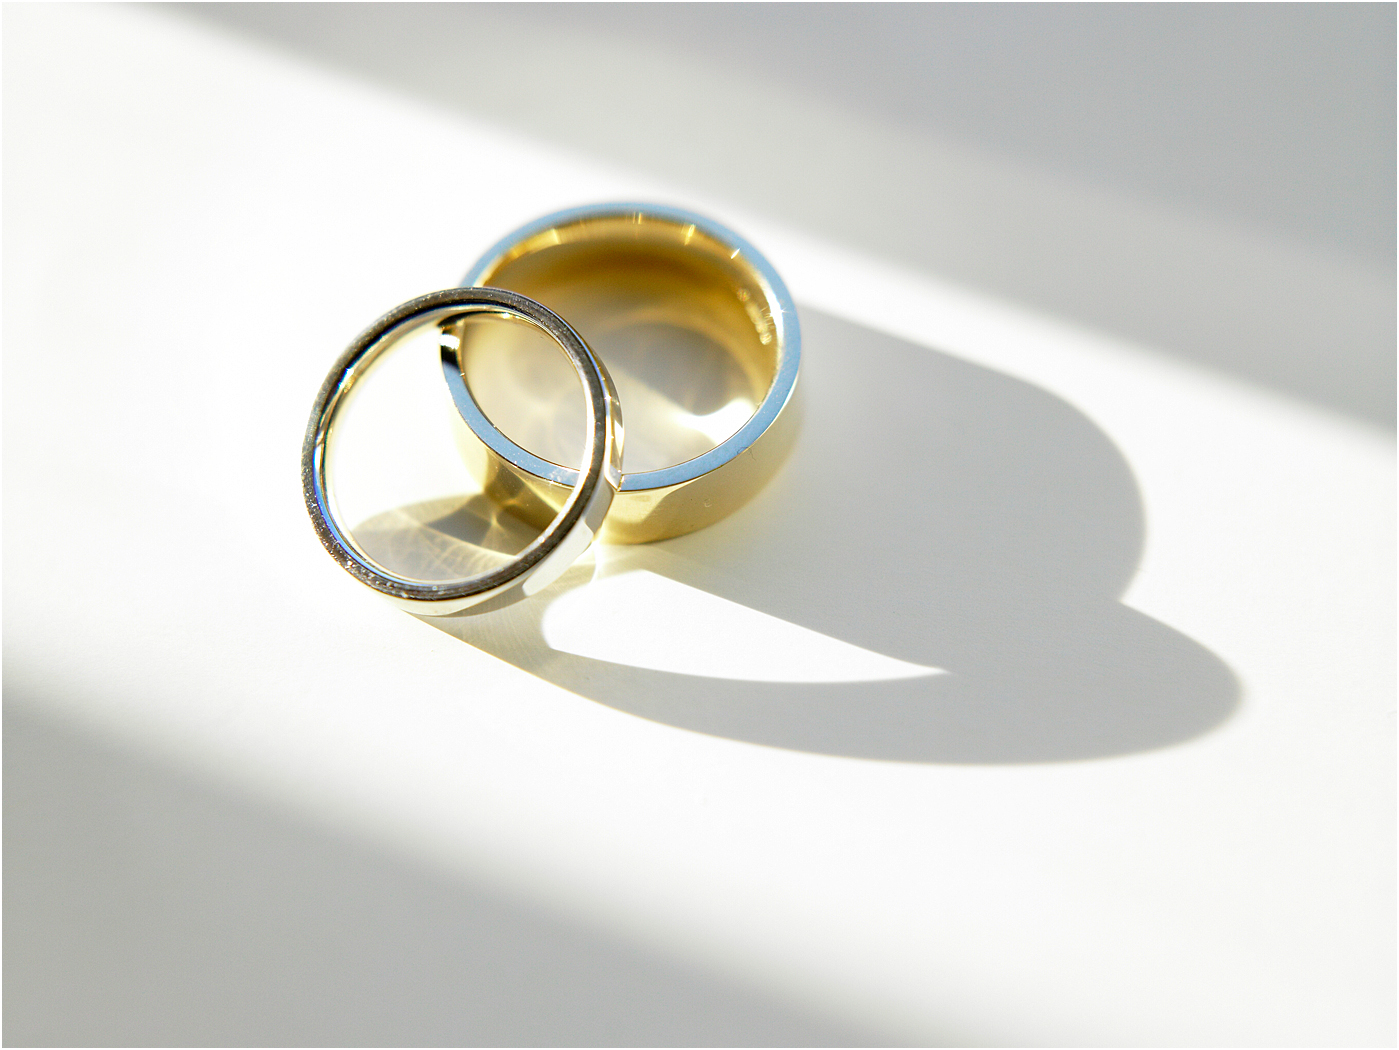 The rings in this shot were placed on a bit of white paper on a windowsill in direct sunlight. Simple but effective composition with shadows. Remember to ask the best man for the rings early on before you really get busy. ISO 400 f/5.6 at 1/250th